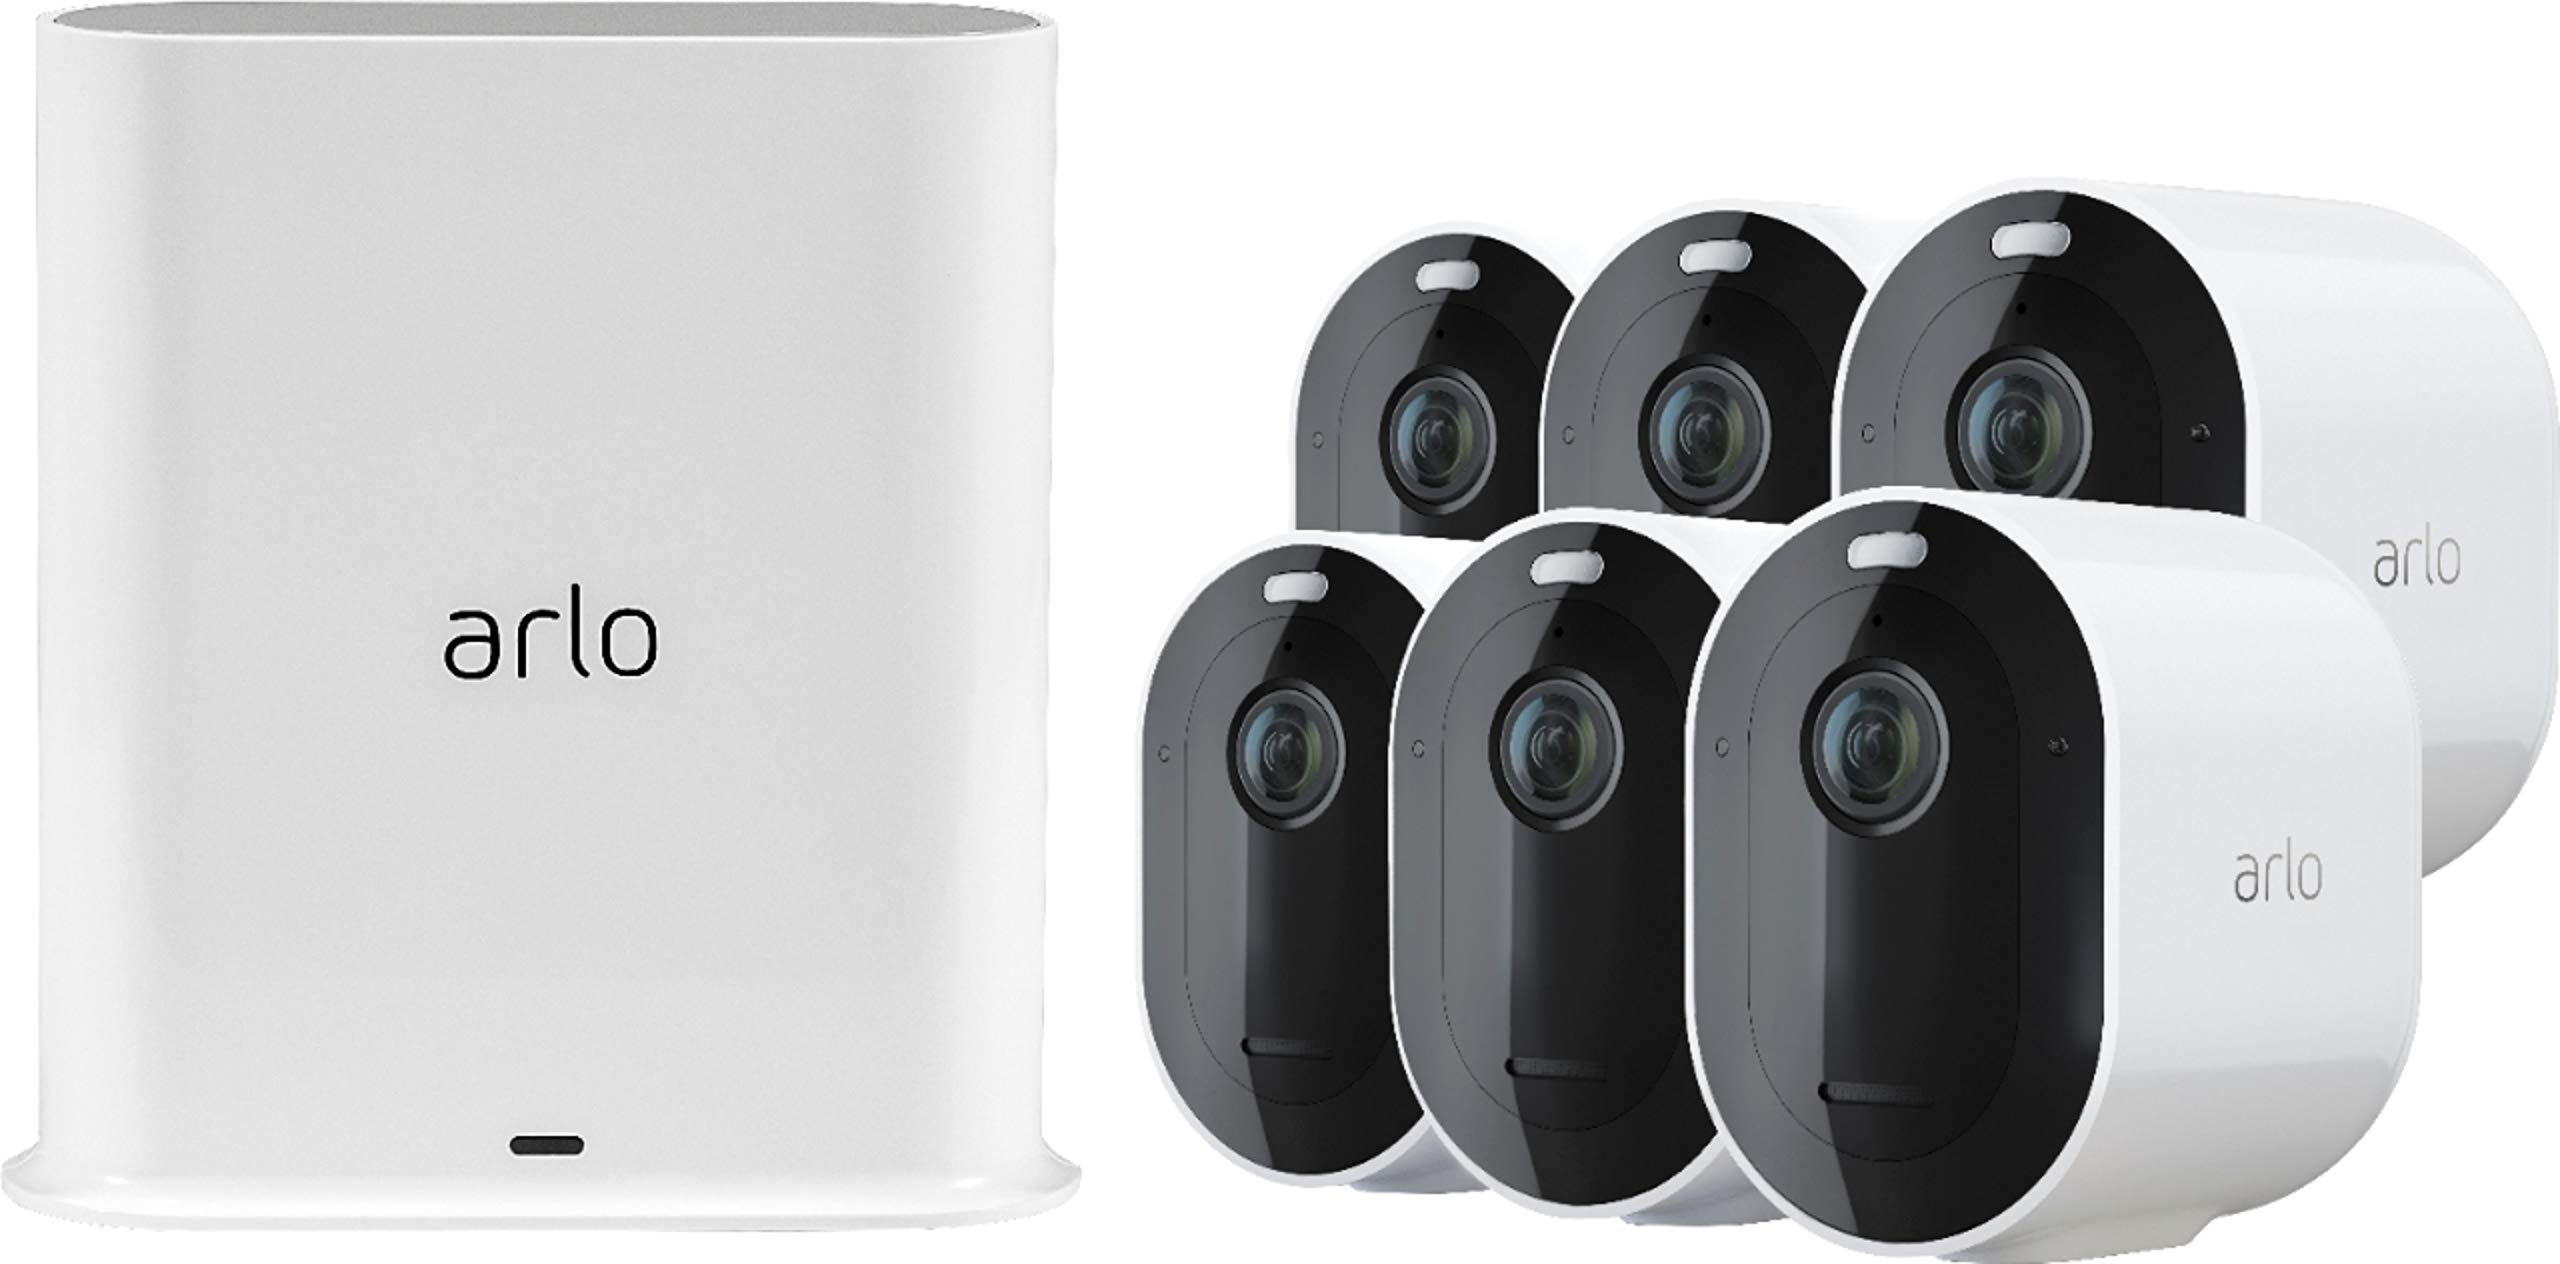 Pro 3 6-Camera Indoor/Outdoor Wire-Free 2K HDR Security Camera System by Arlo Technologies, Inc